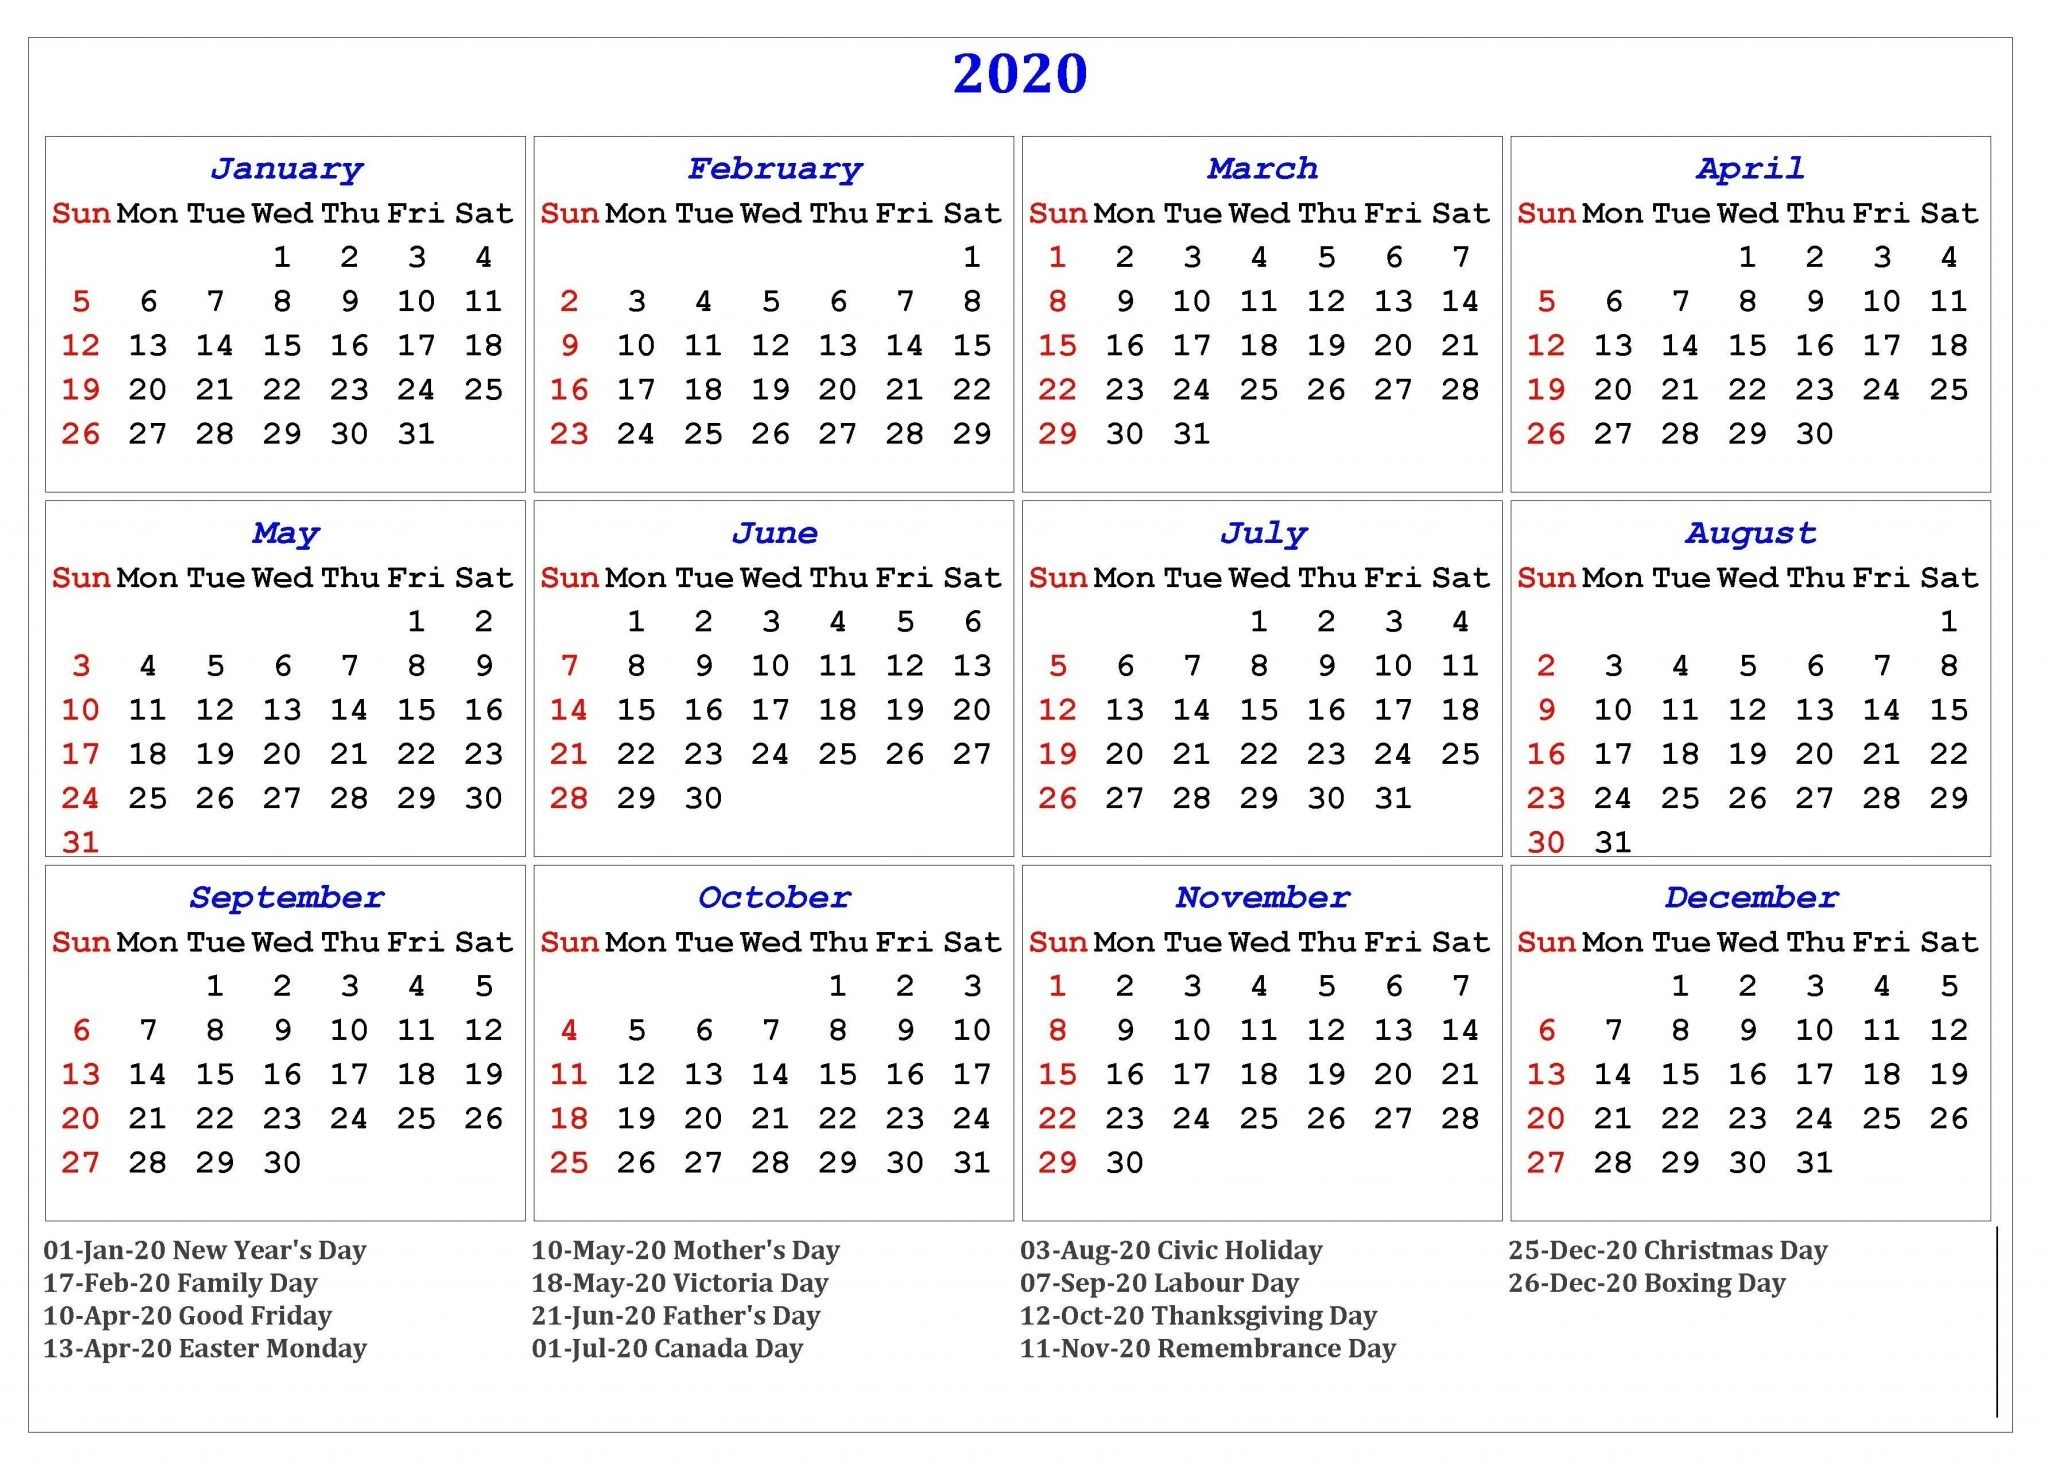 Free Yearly Printable Calendar 2020 With Holidays-Calendar 2020 Printable Holidays Special